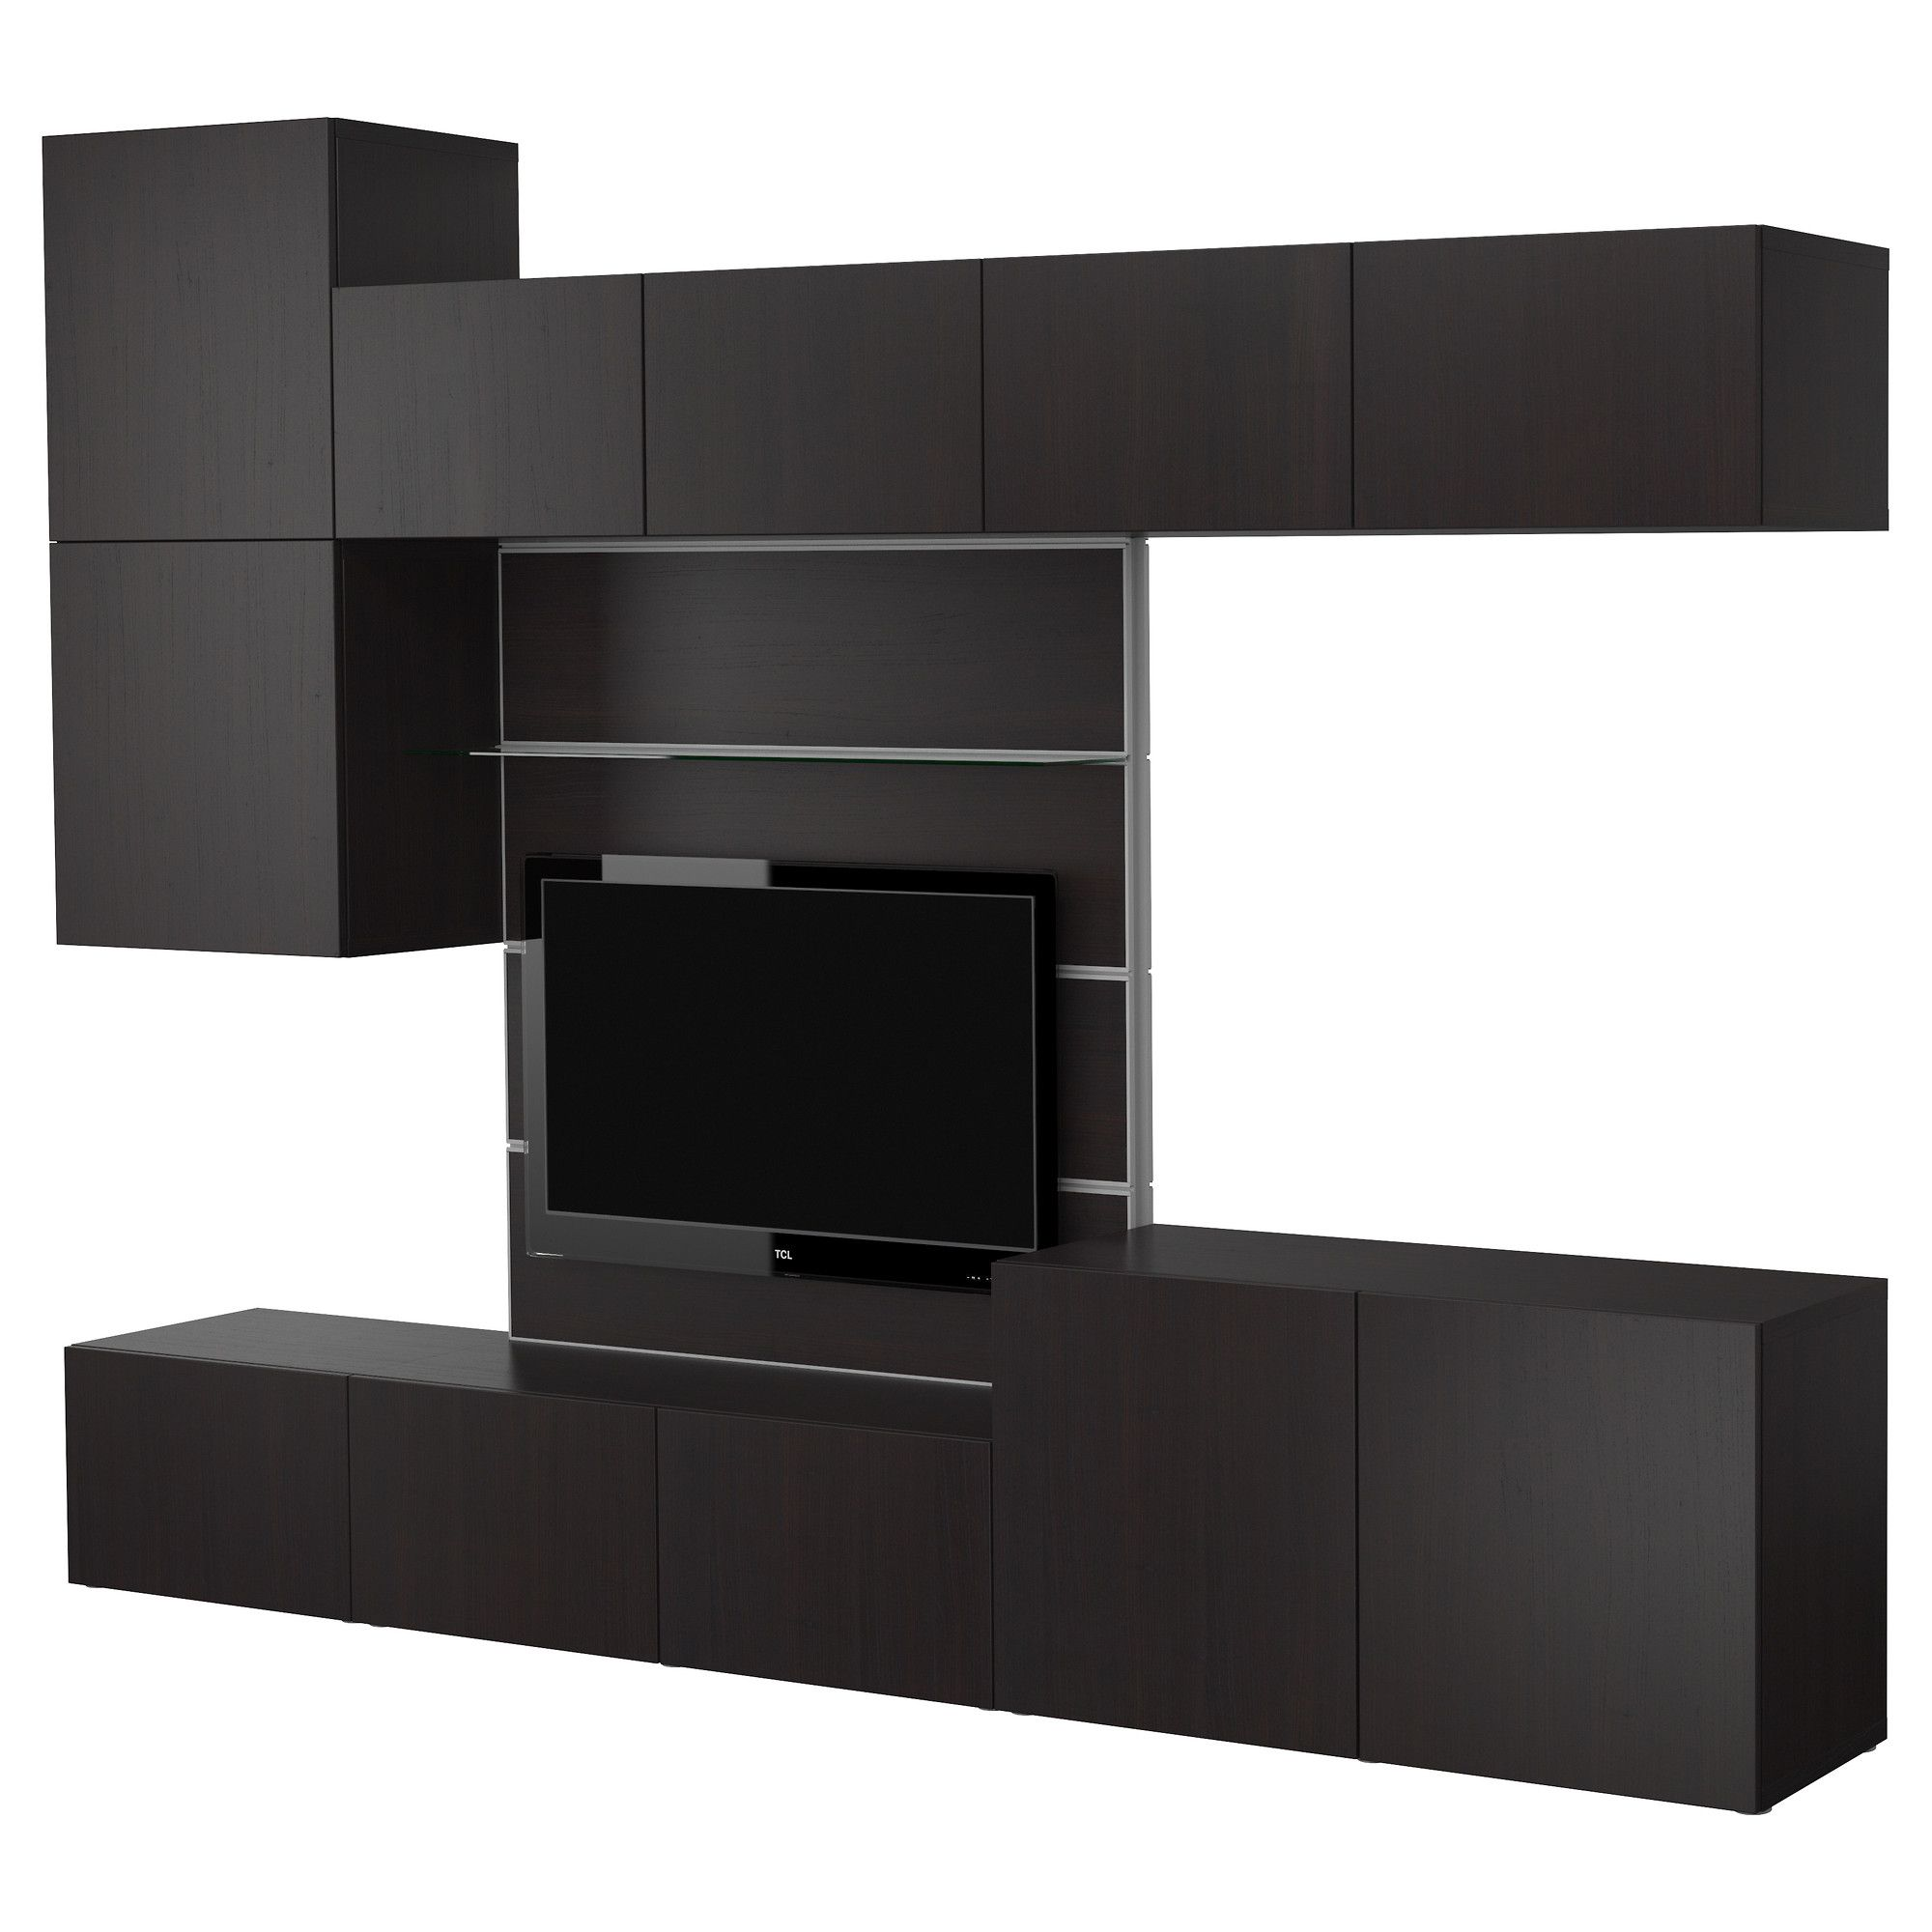 3 Tetris Furniture 600 Best Tv Panel With Media Storage Black  # Banc Tele But